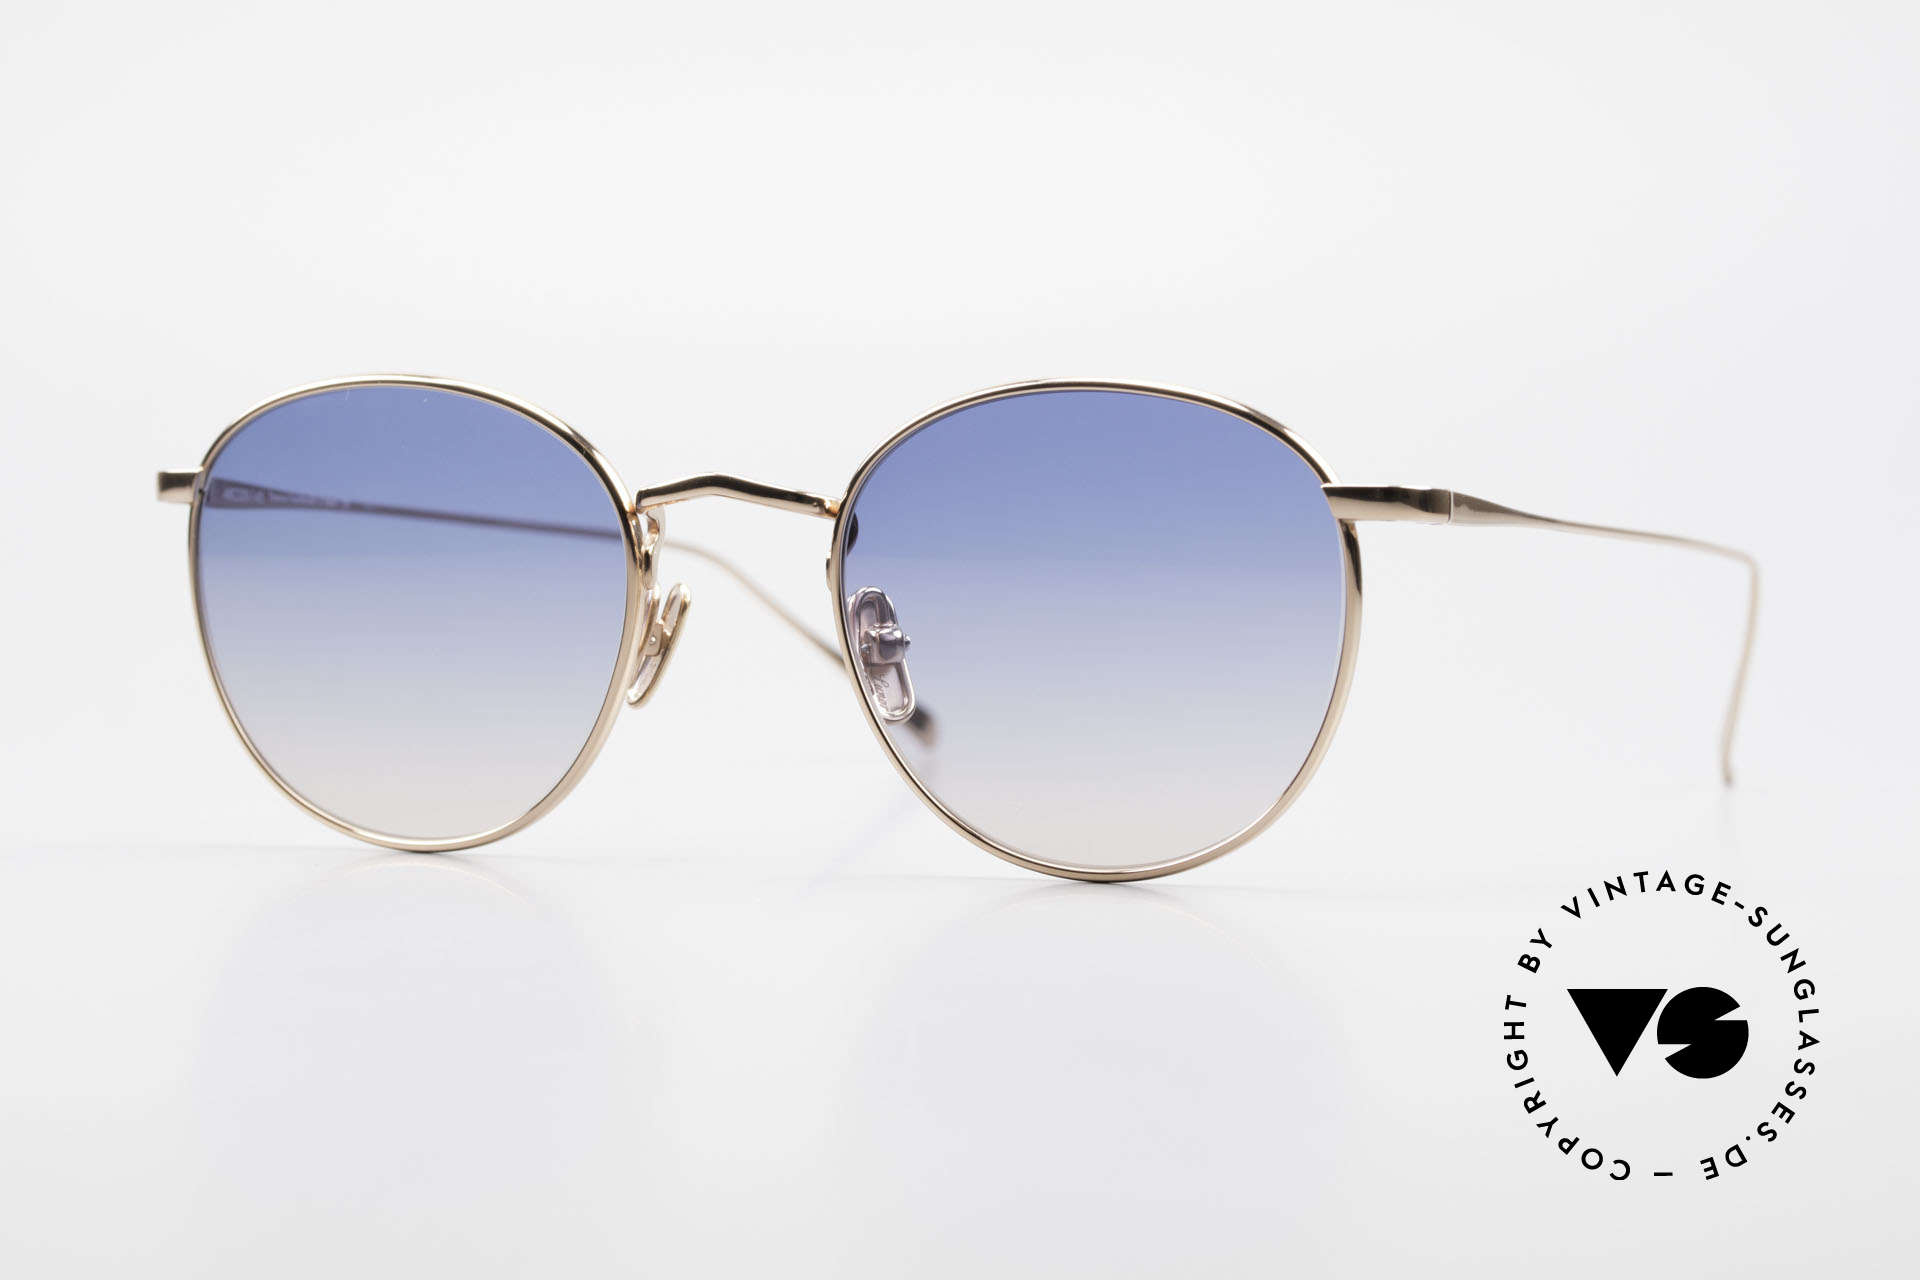 Lunor M9 Mod 01 RG Titan Sunglasses Rose Gold, LUNOR: honest craftsmanship with attention to details, Made for Men and Women